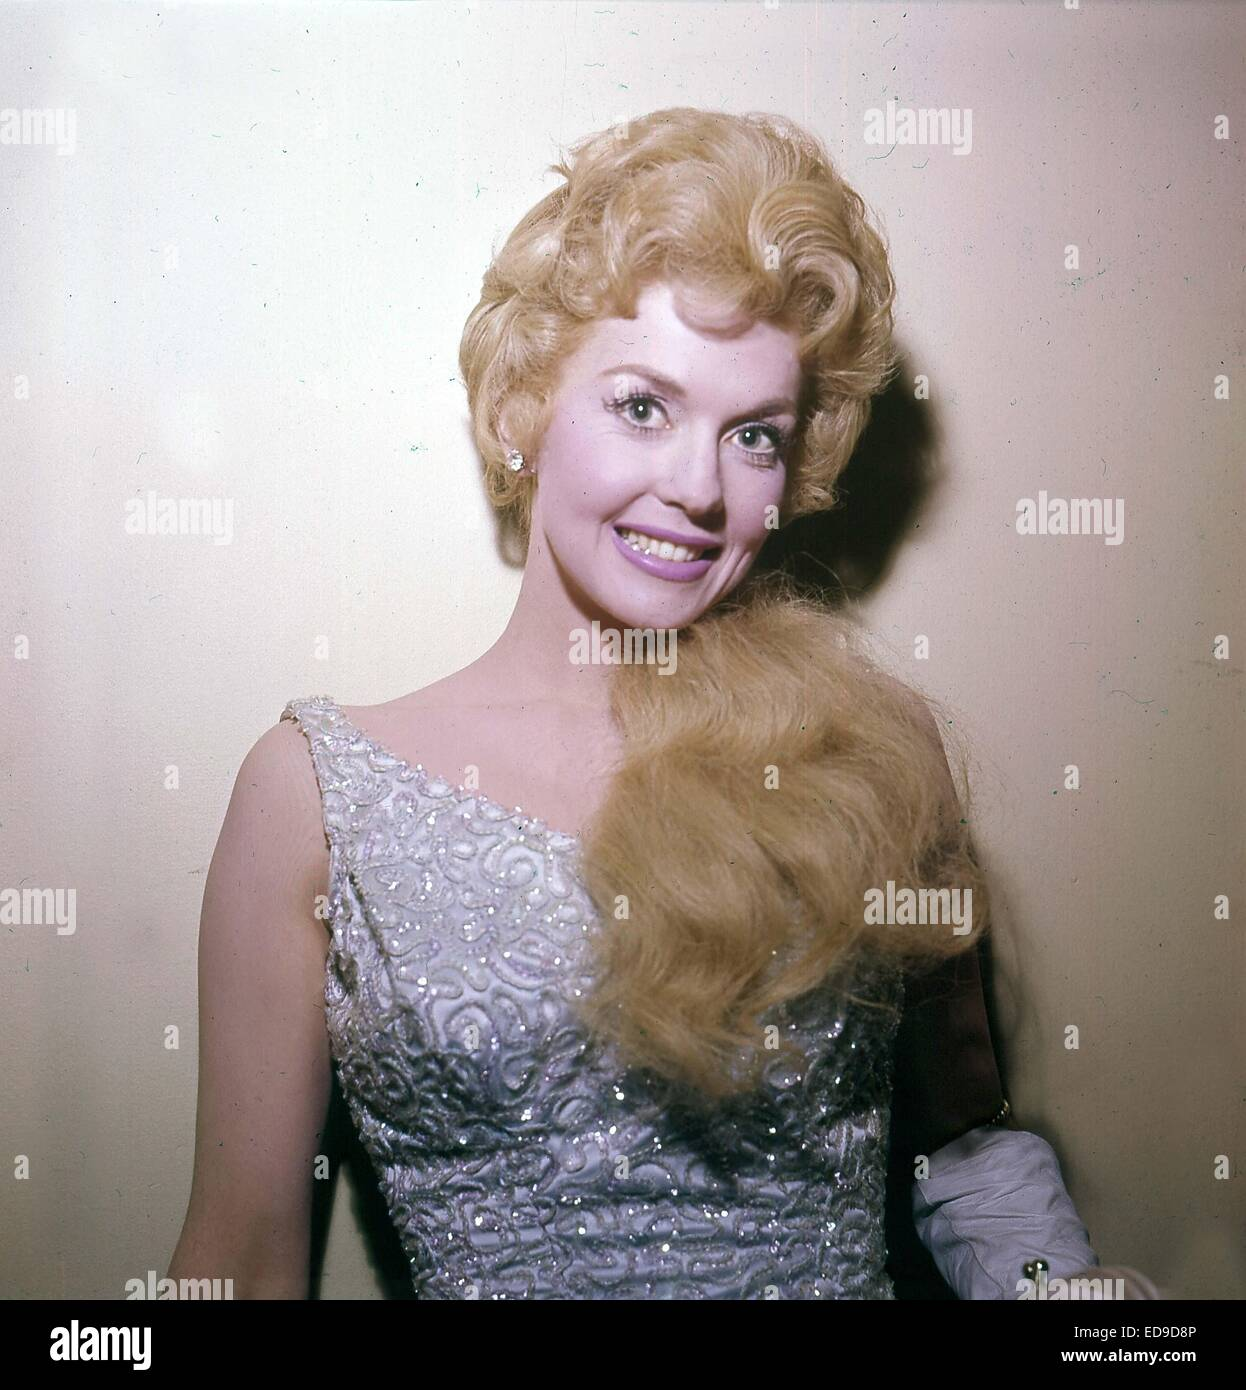 File. 2nd Jan, 2015. Donna Douglas, who played hillbilly bombshell Elly May Clampett on the baby-boomer-beloved 1960s sitcom The Beverly Hillbillies, has died in her Louisiana home. She was 81. PICTURED: DONNA DOUGLAS. © Globe Photos/ZUMAPRESS.com/Alamy Live News Stock Photo